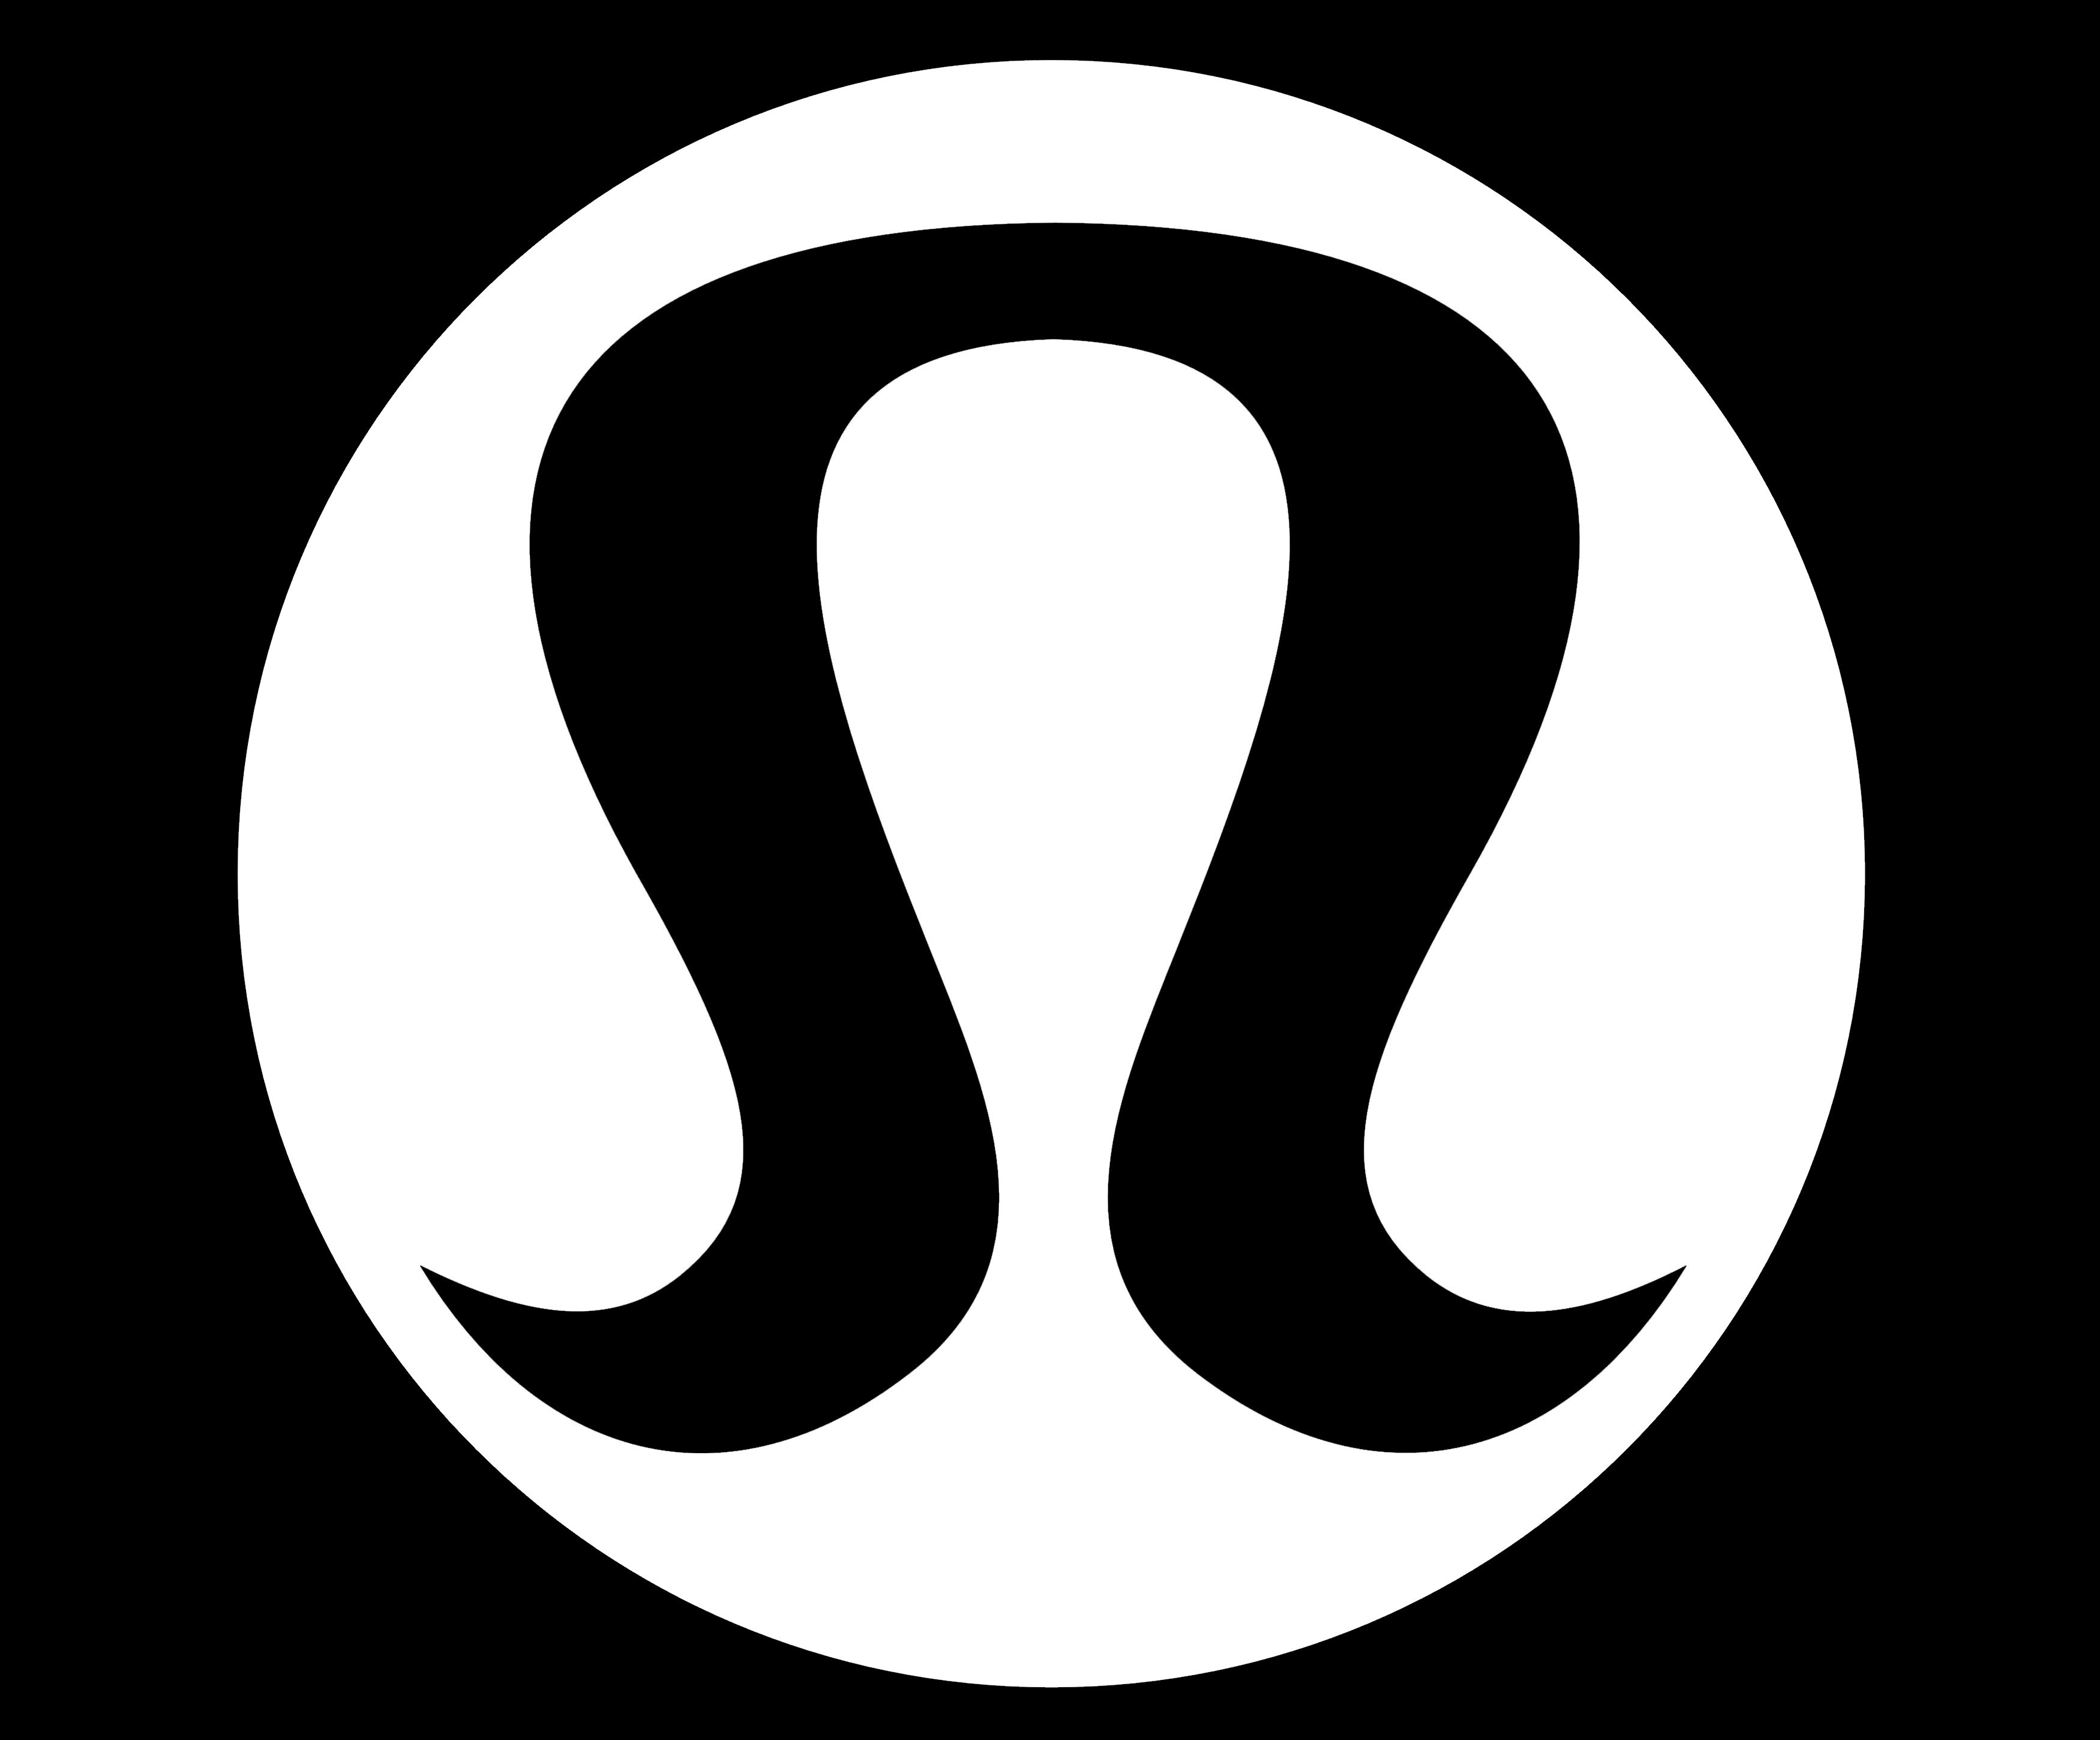 lululemon logo  lululemon symbol  meaning  history and